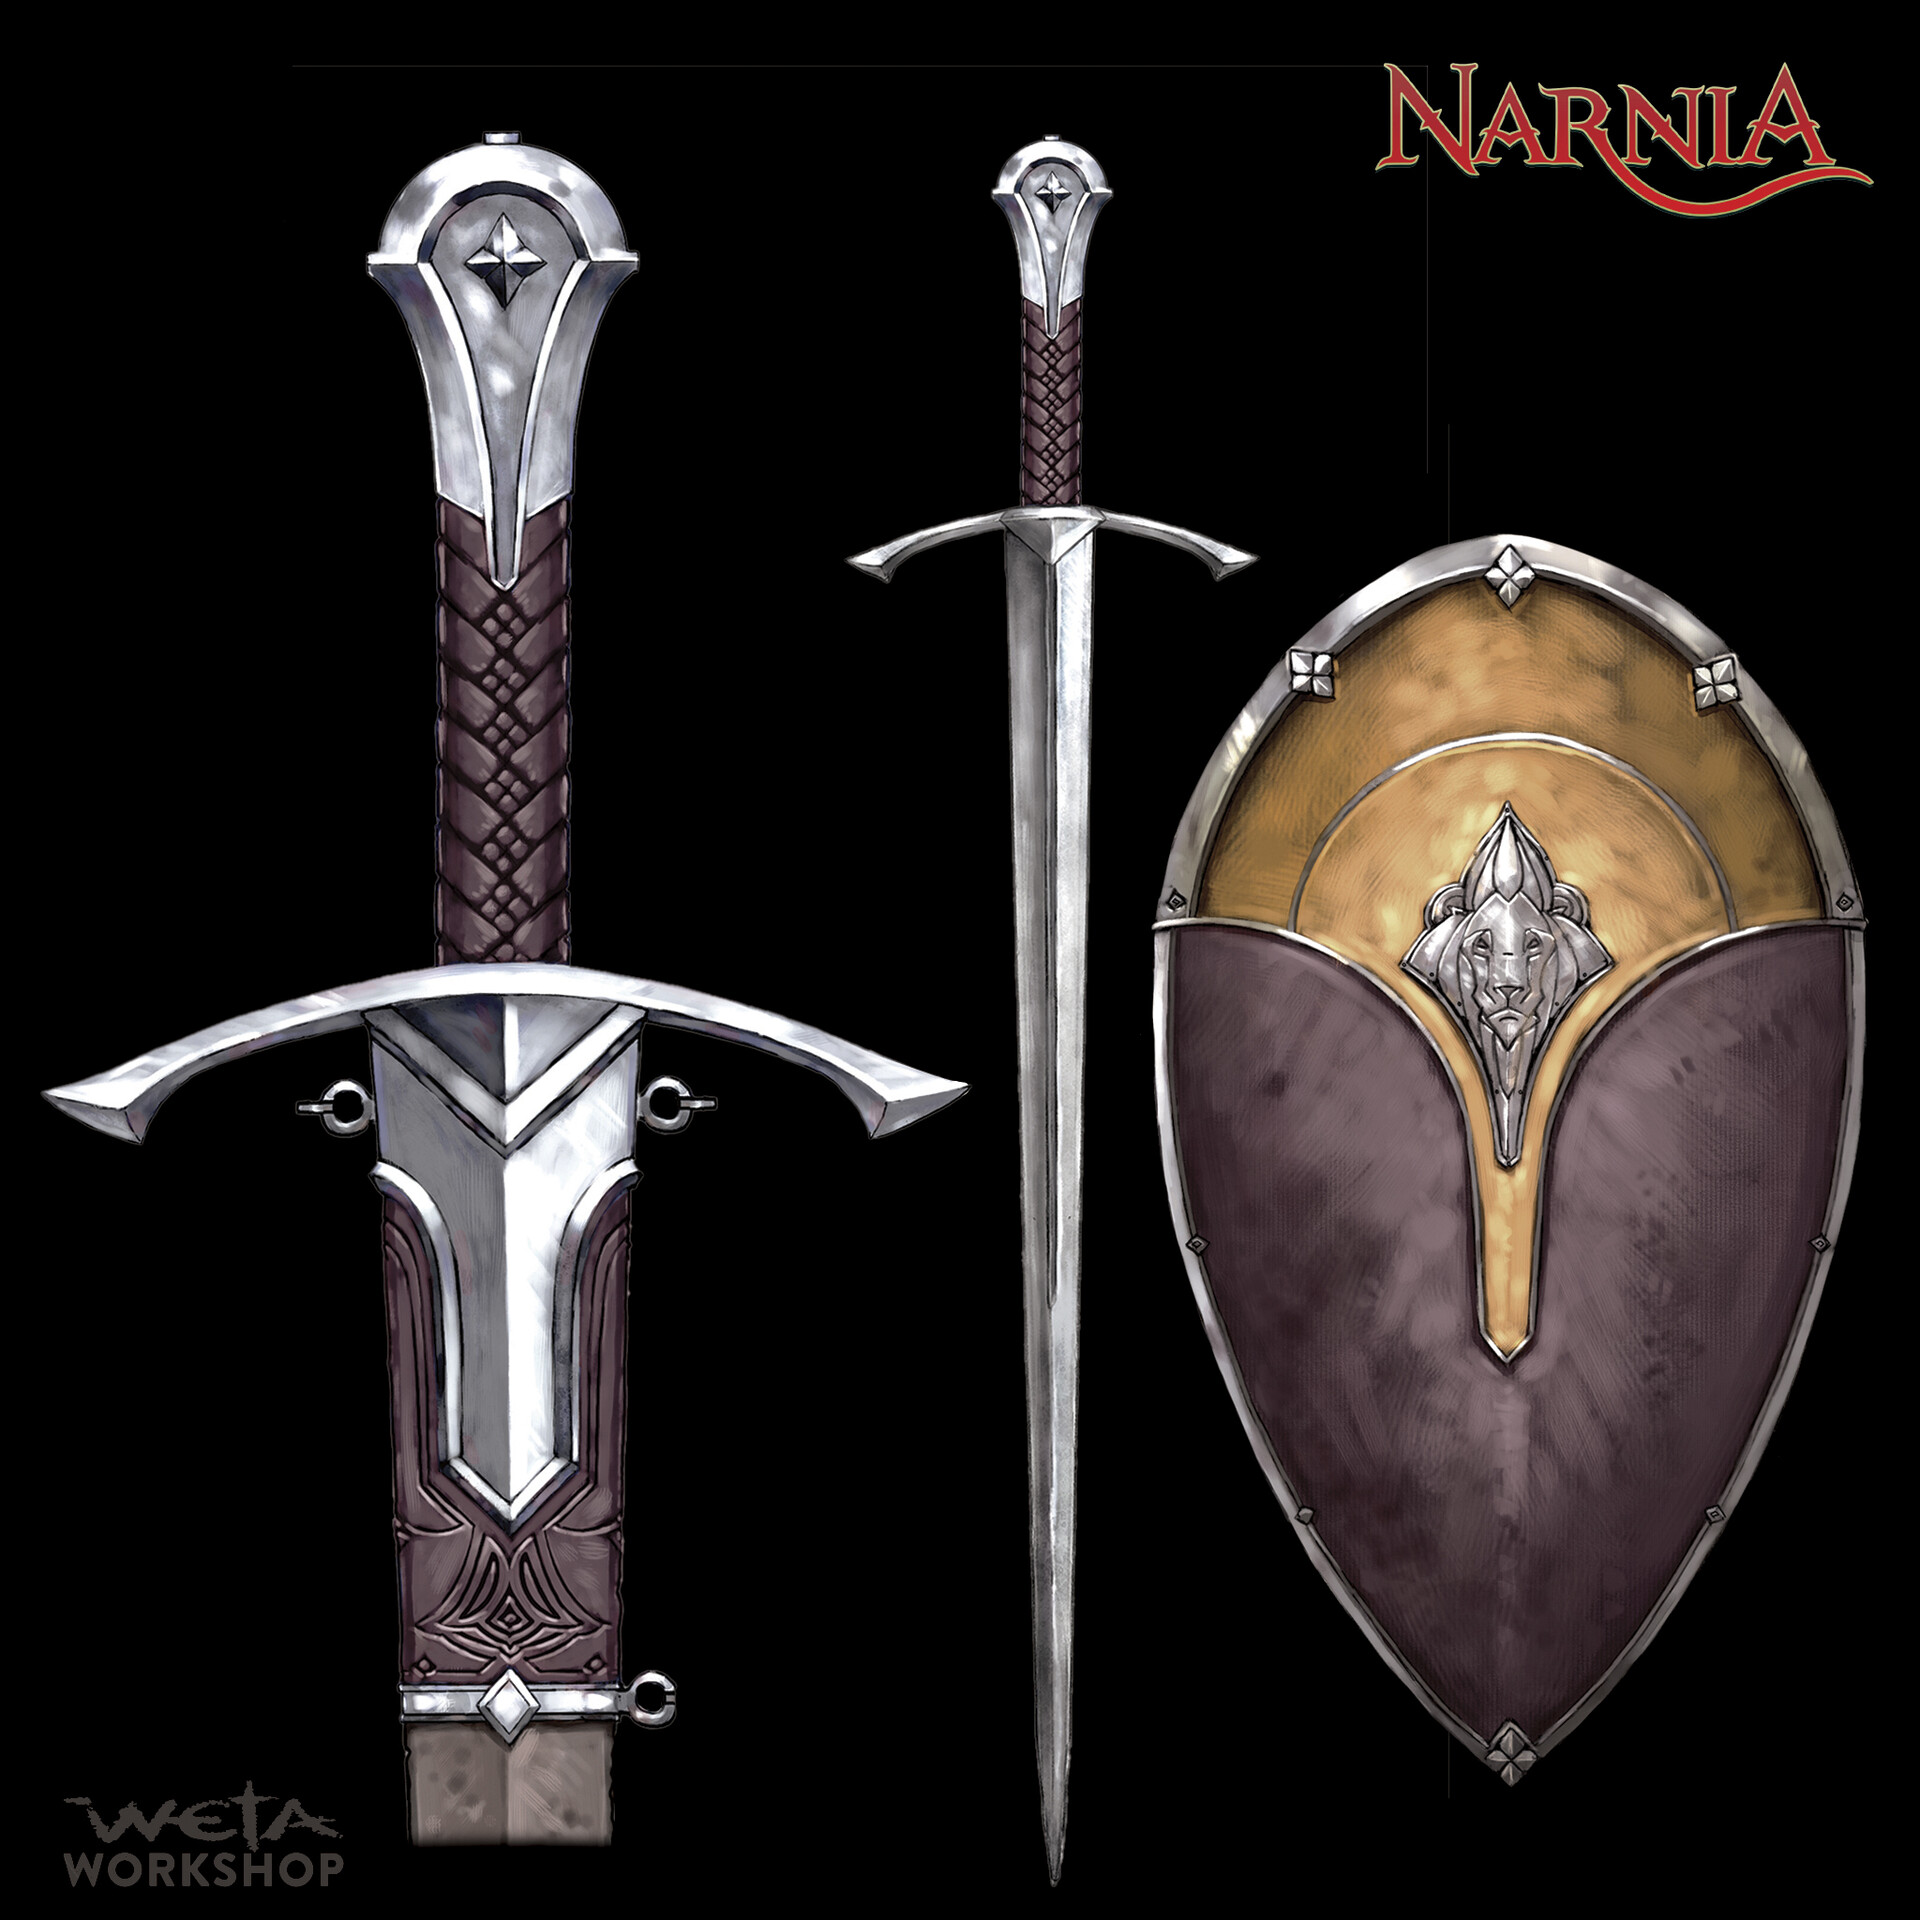 King Edmund's Sword and Shield